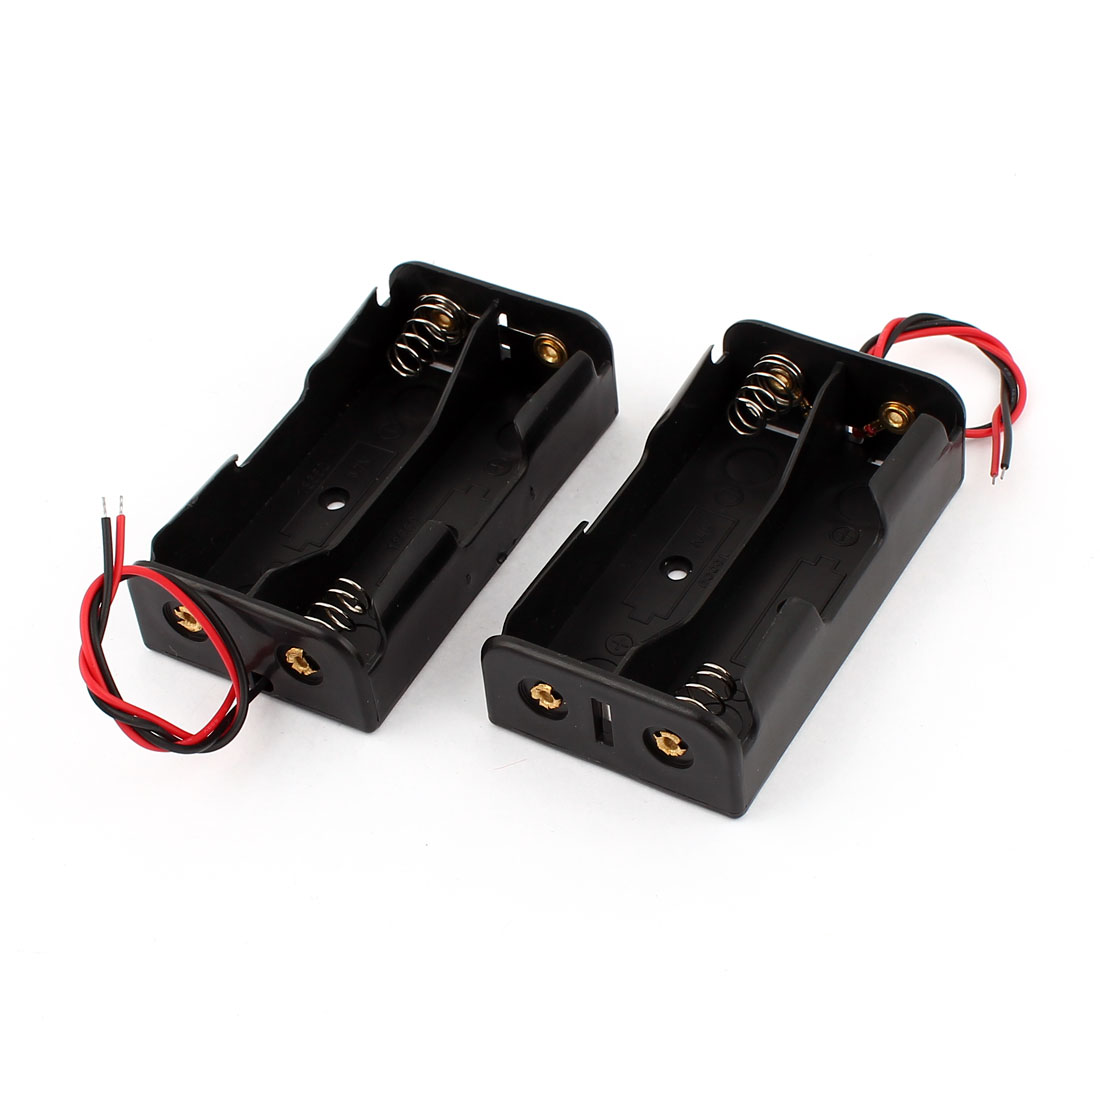 2Pcs Black 2 x 3.7V 18650 Battery Batteries Holder Case w Wire Leads